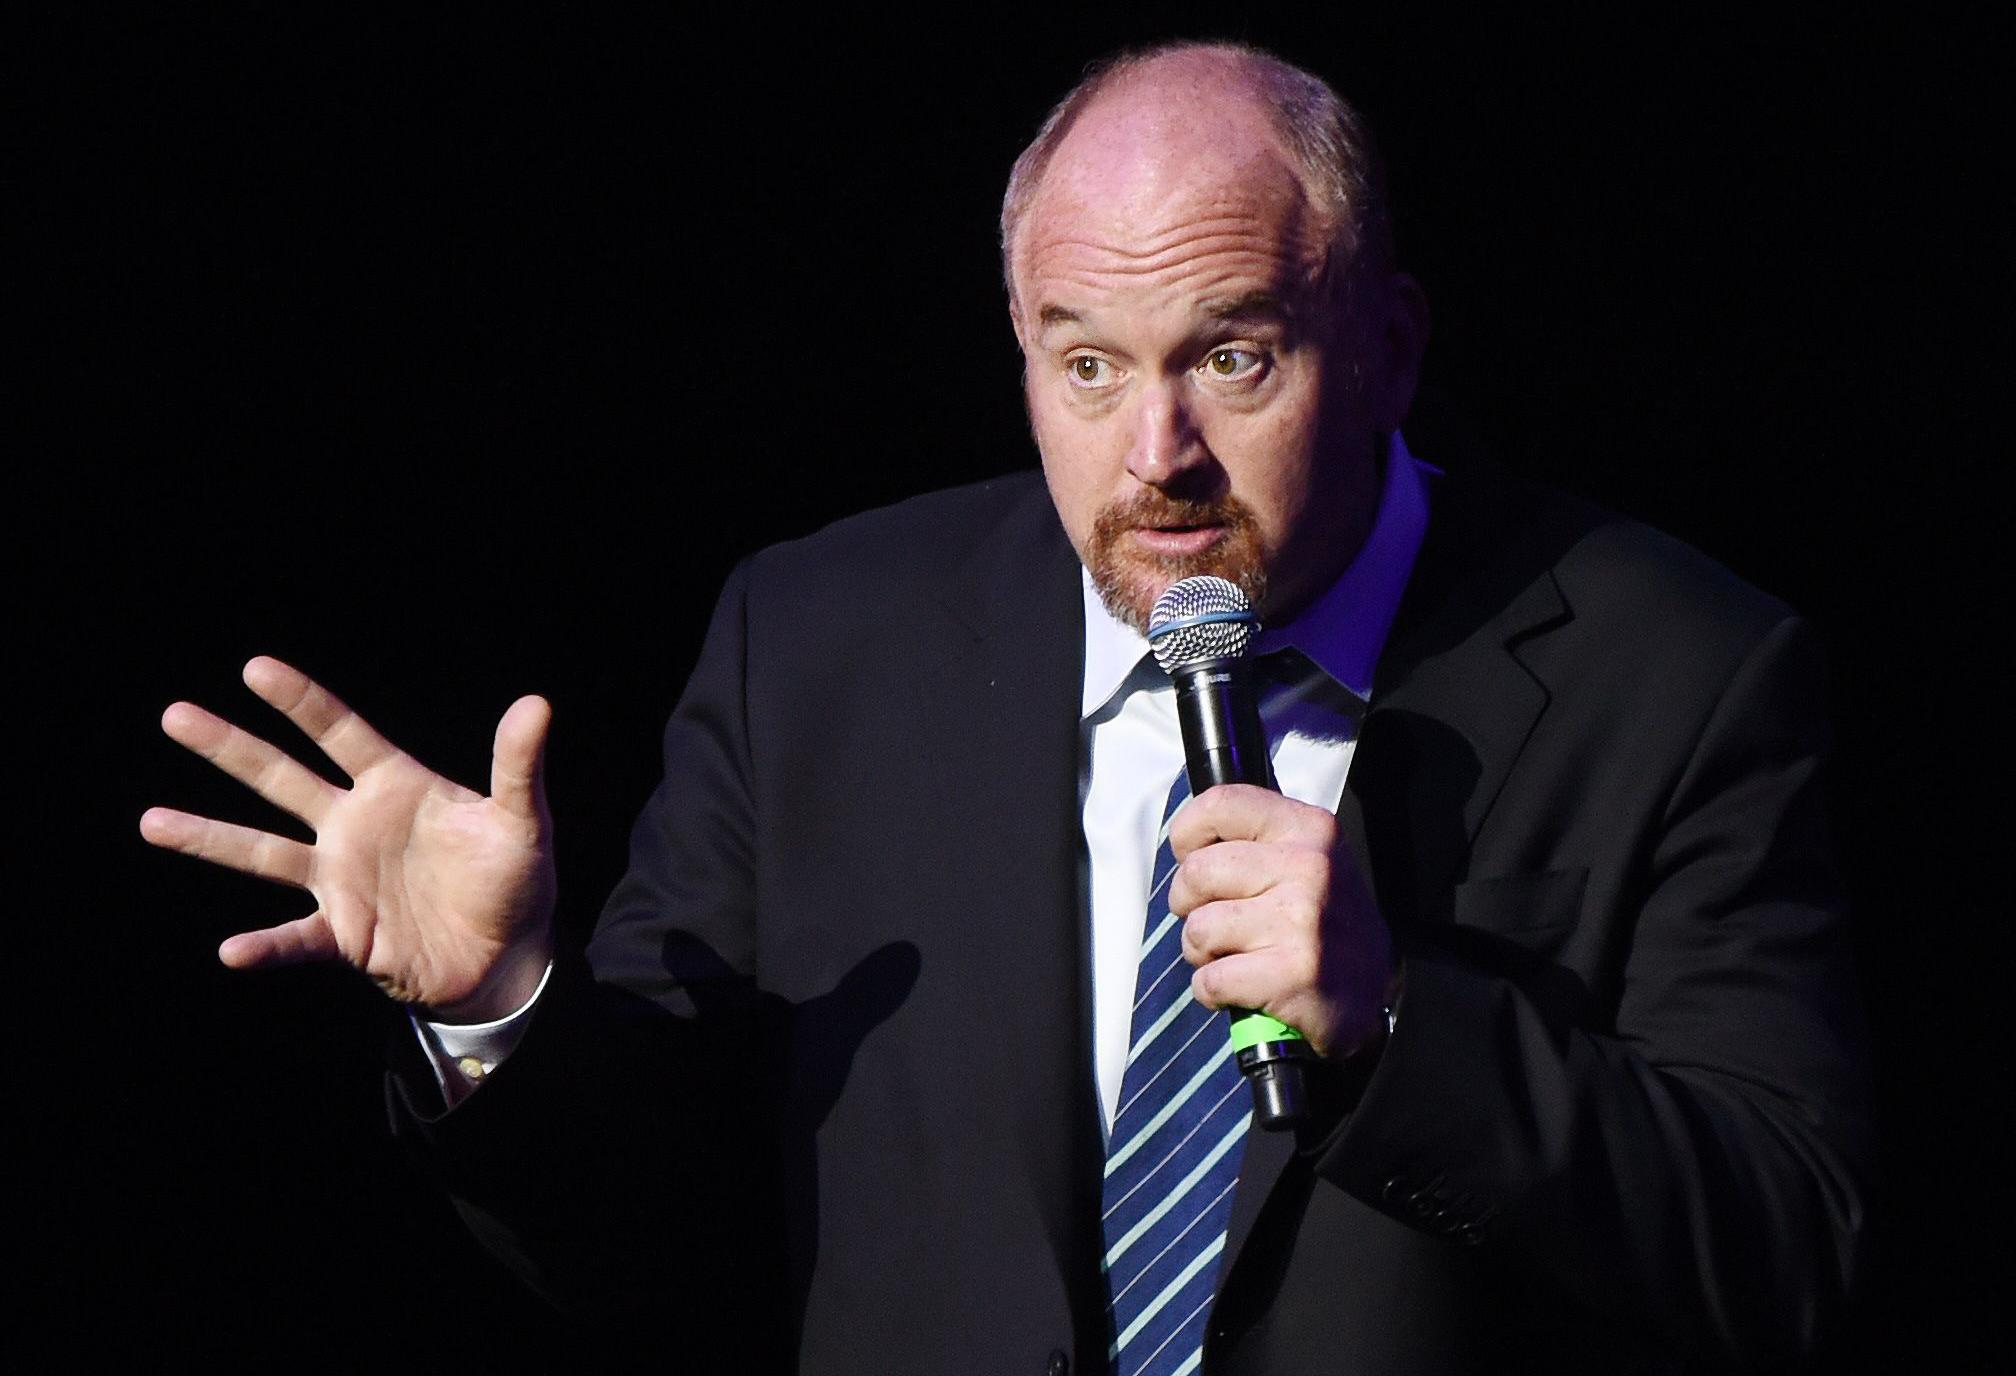 Louis C.K. Performs Stand-Up Performance In Paris; Low-Key Show Held At Theatre De L'Oeuvre